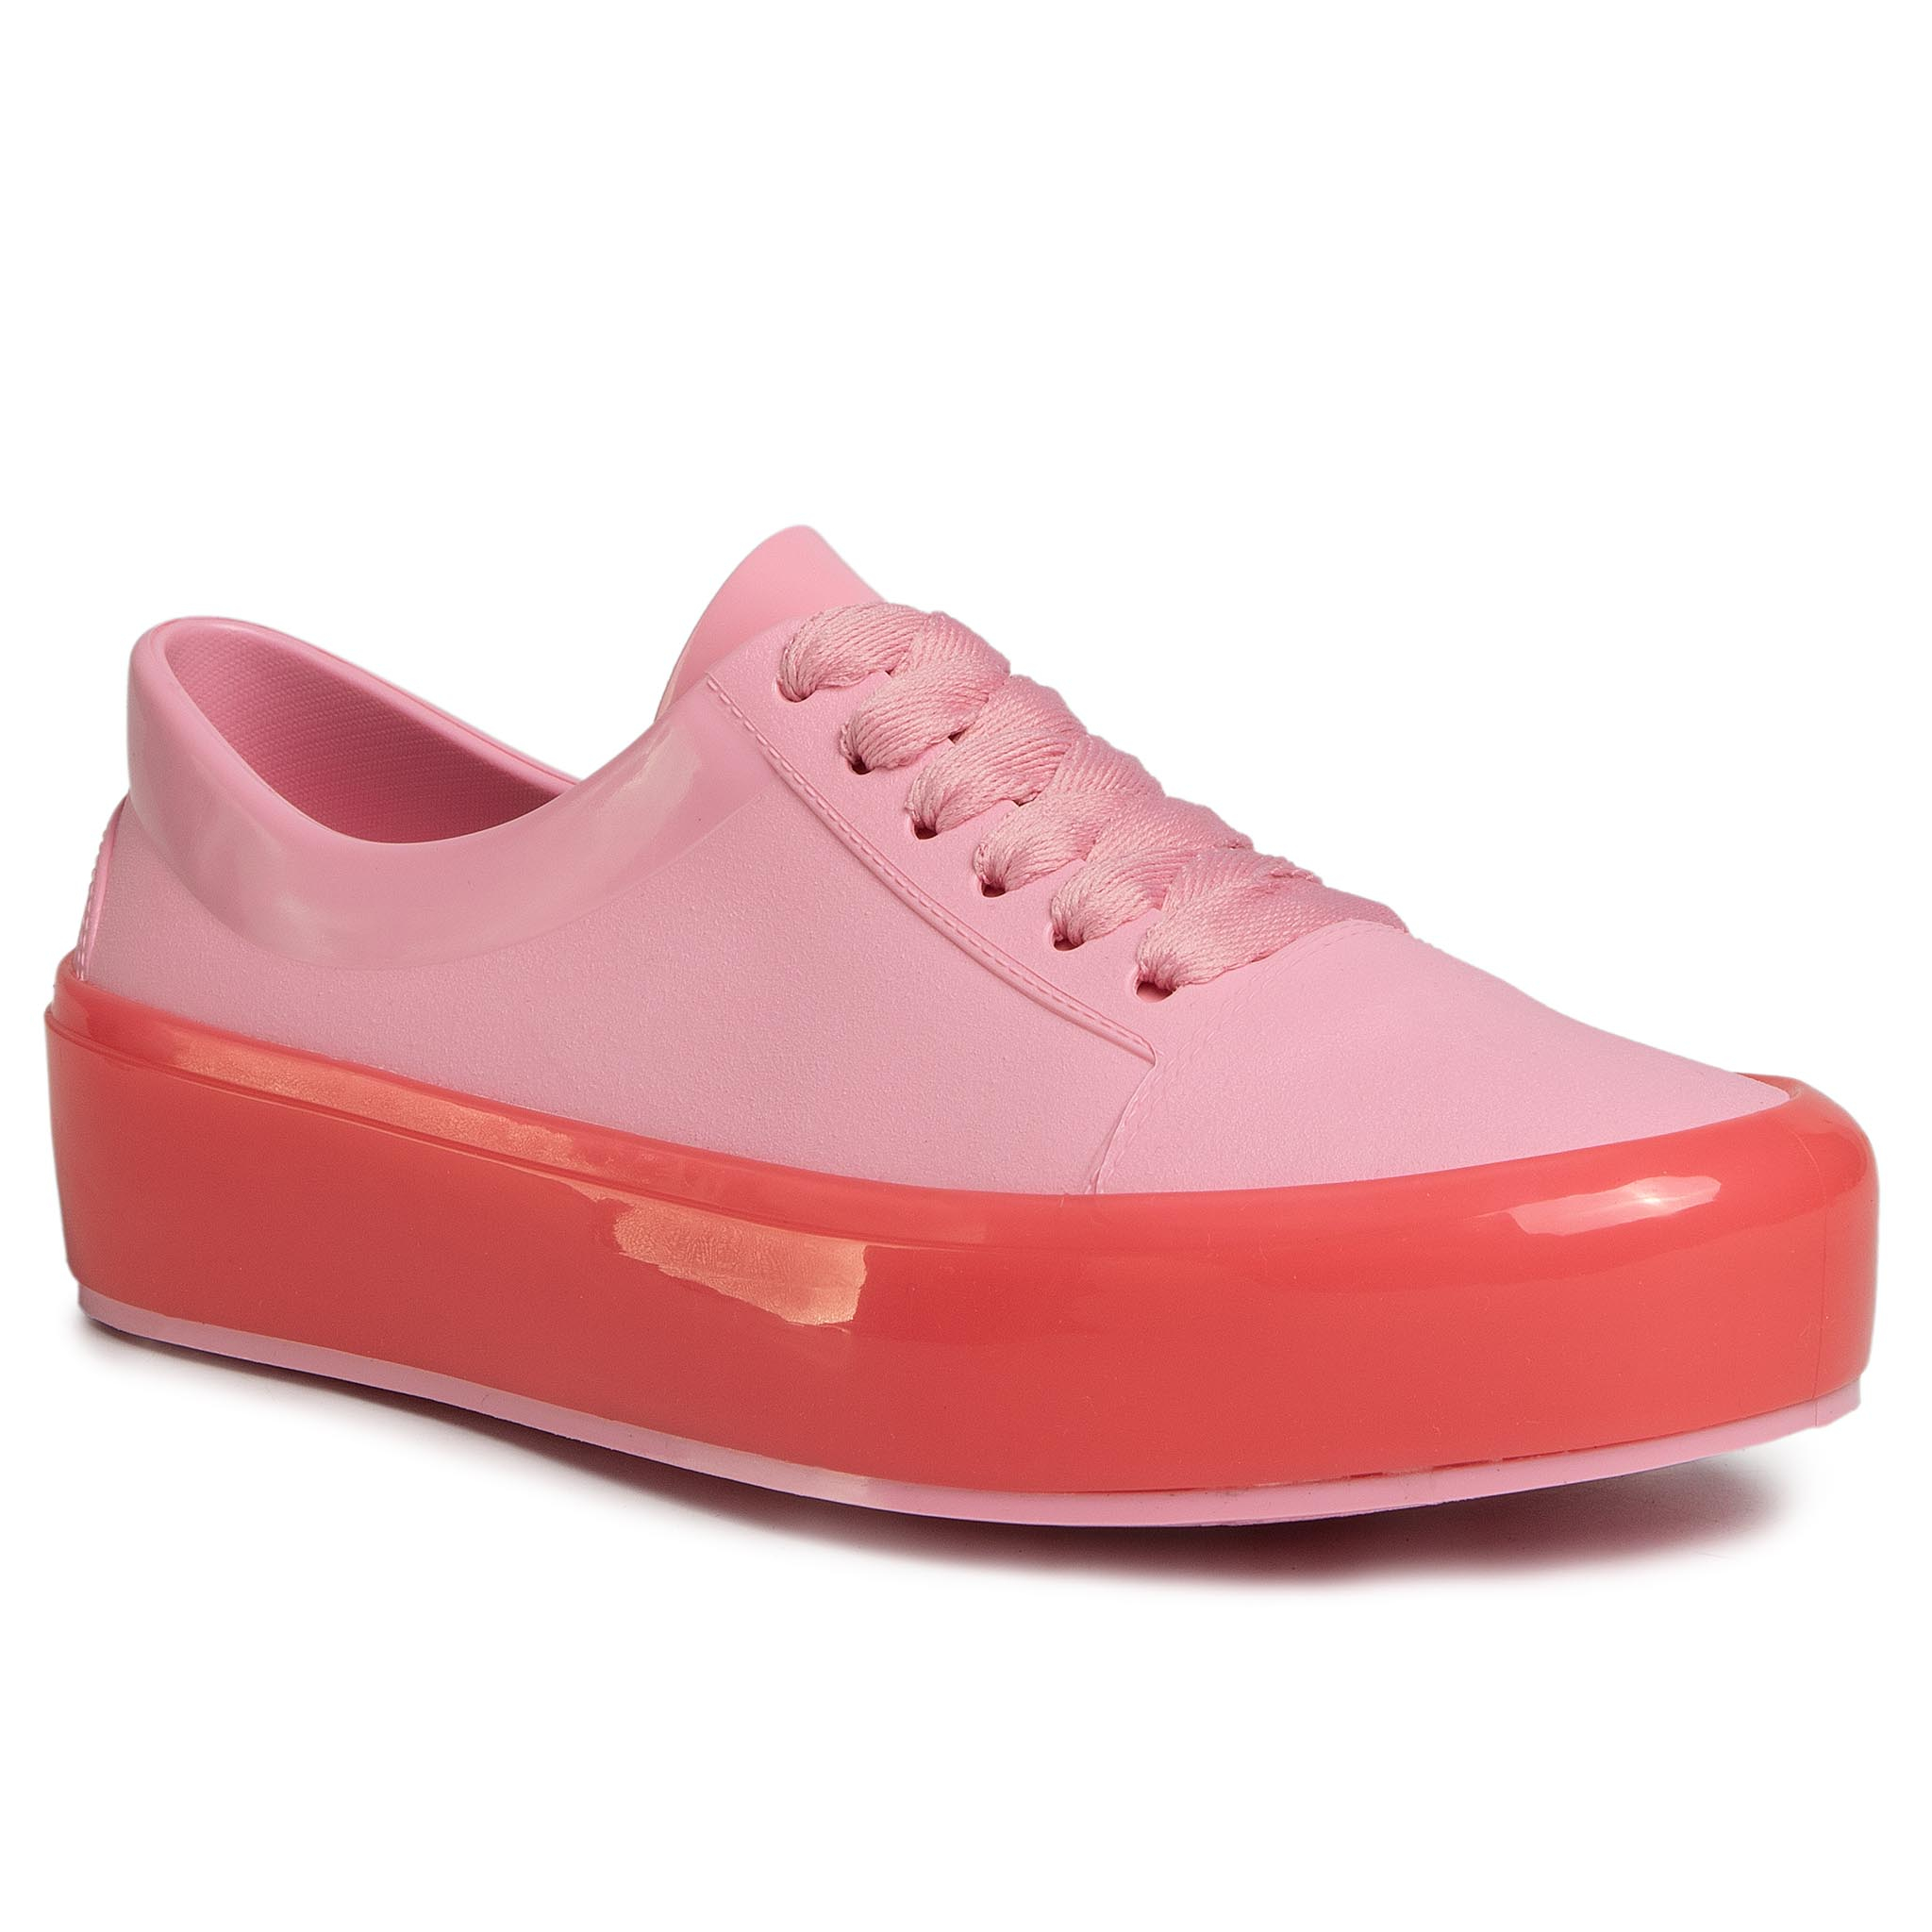 Sneakers MELISSA - Melissa Street Ad 32898 Pink/Red 51338